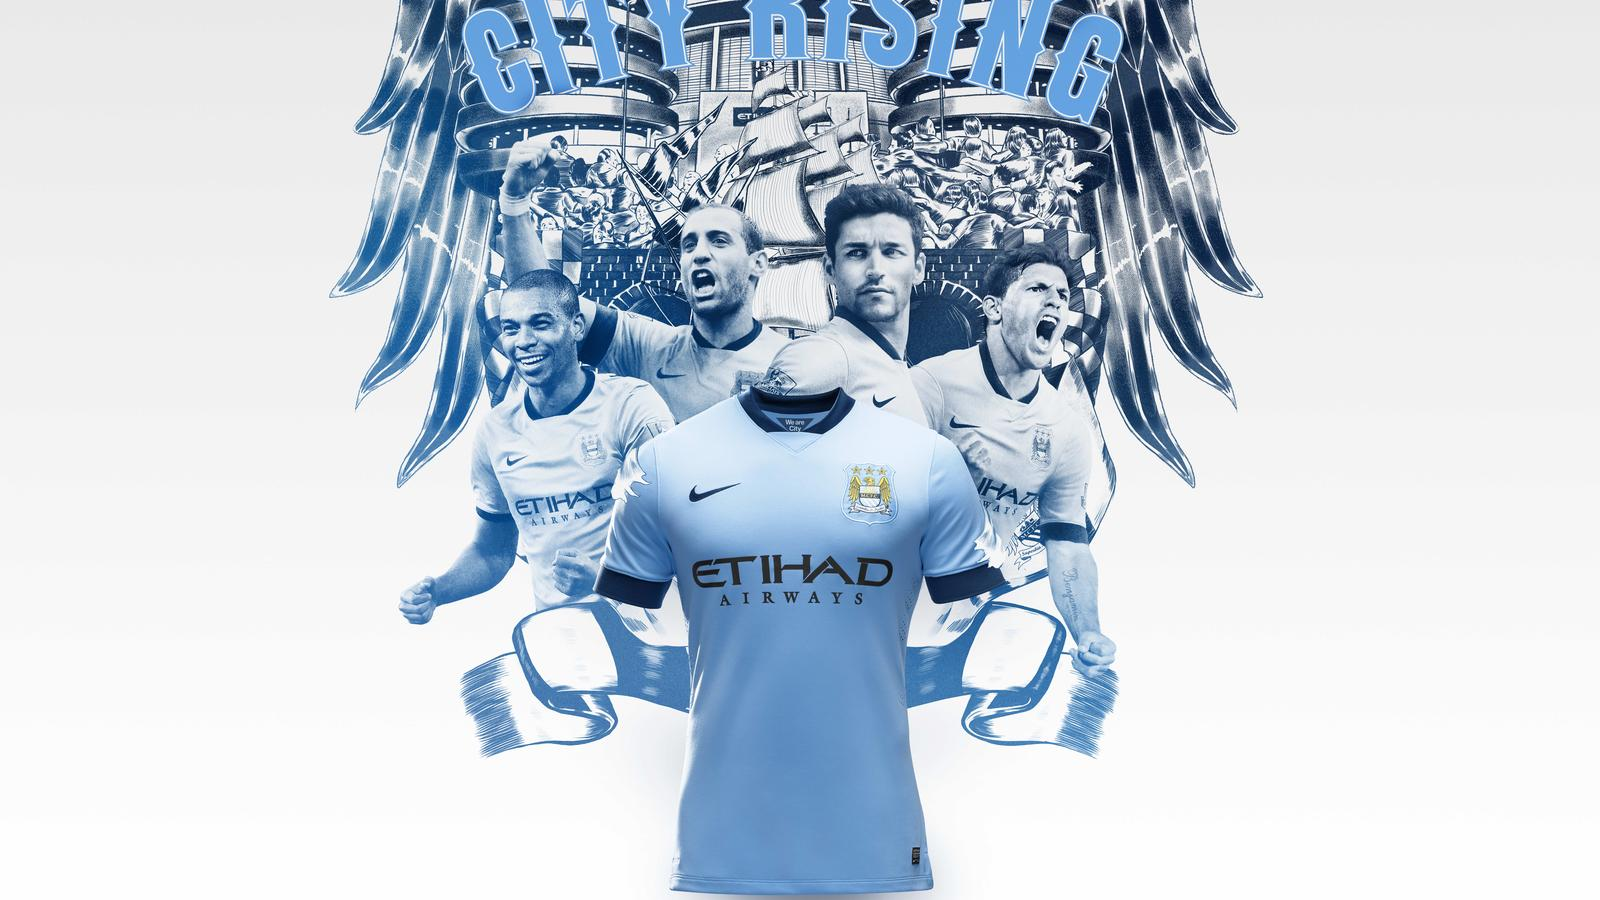 Manchester City - City Rising